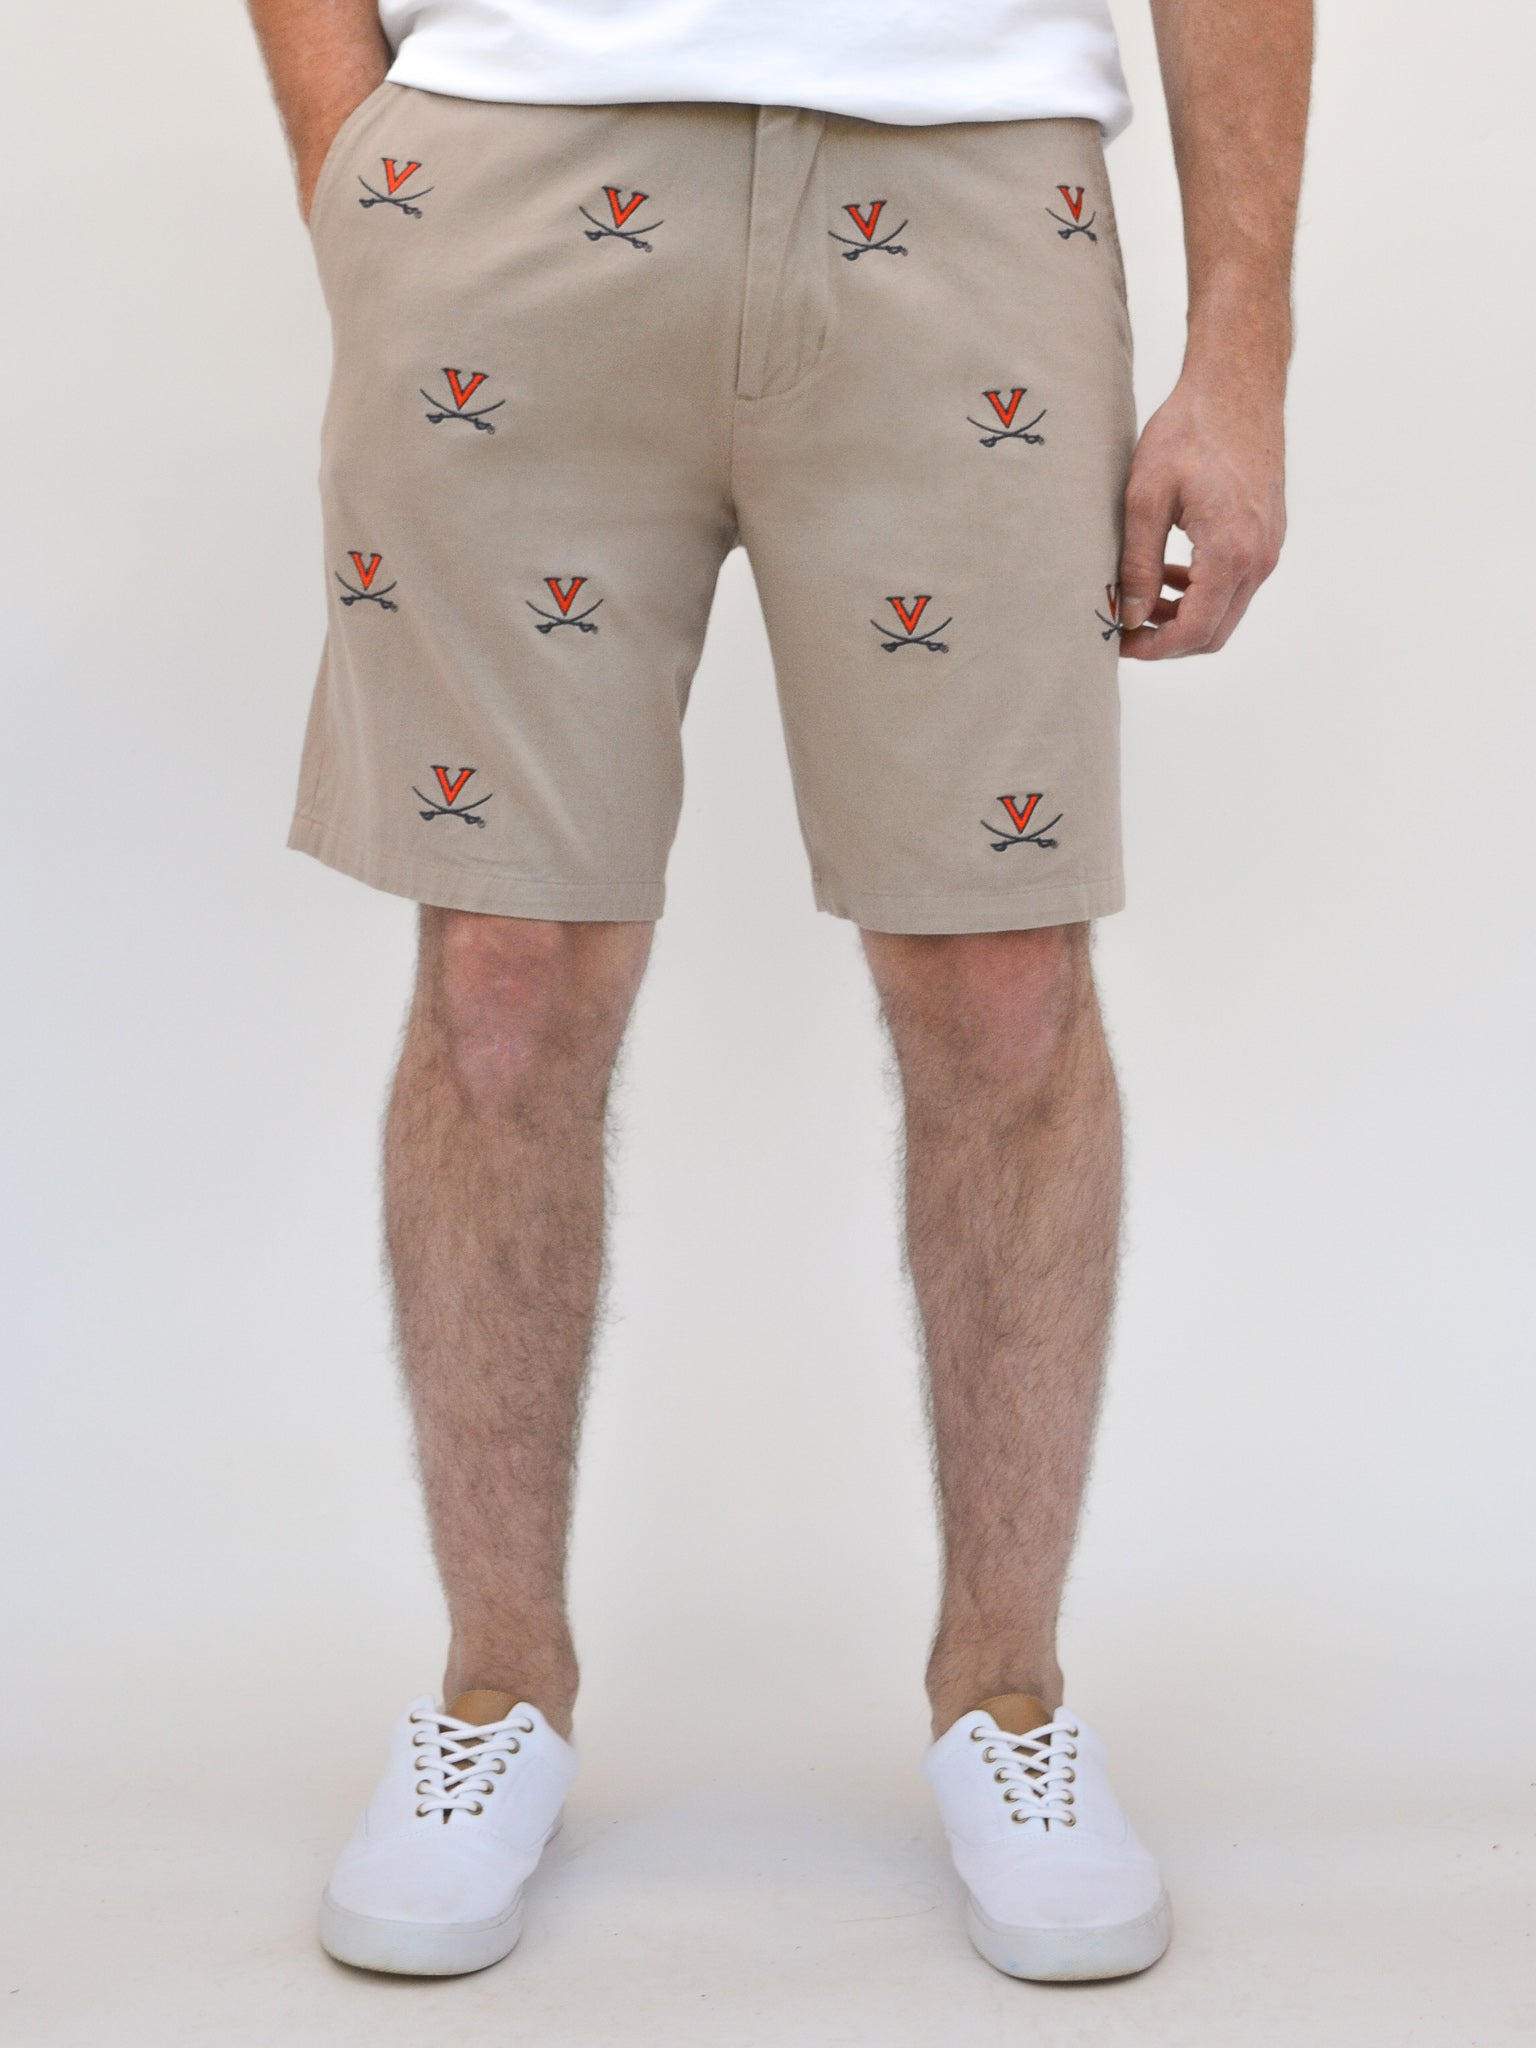 University of Virginia Khaki Shorts